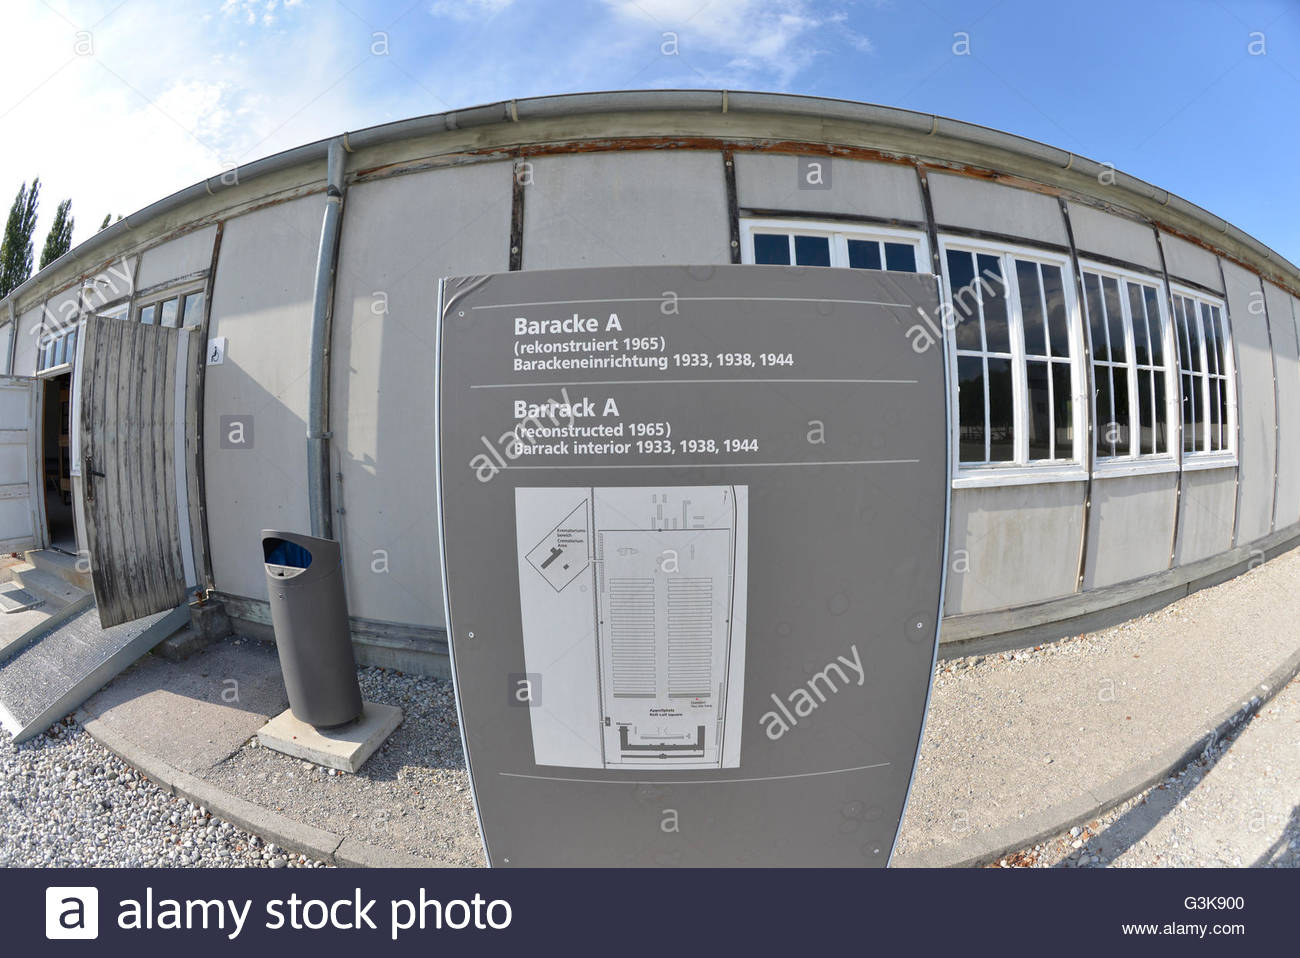 prisoners Barrack map at Dachau Concentration Camp Munich Germany Bavaria - Stock Image